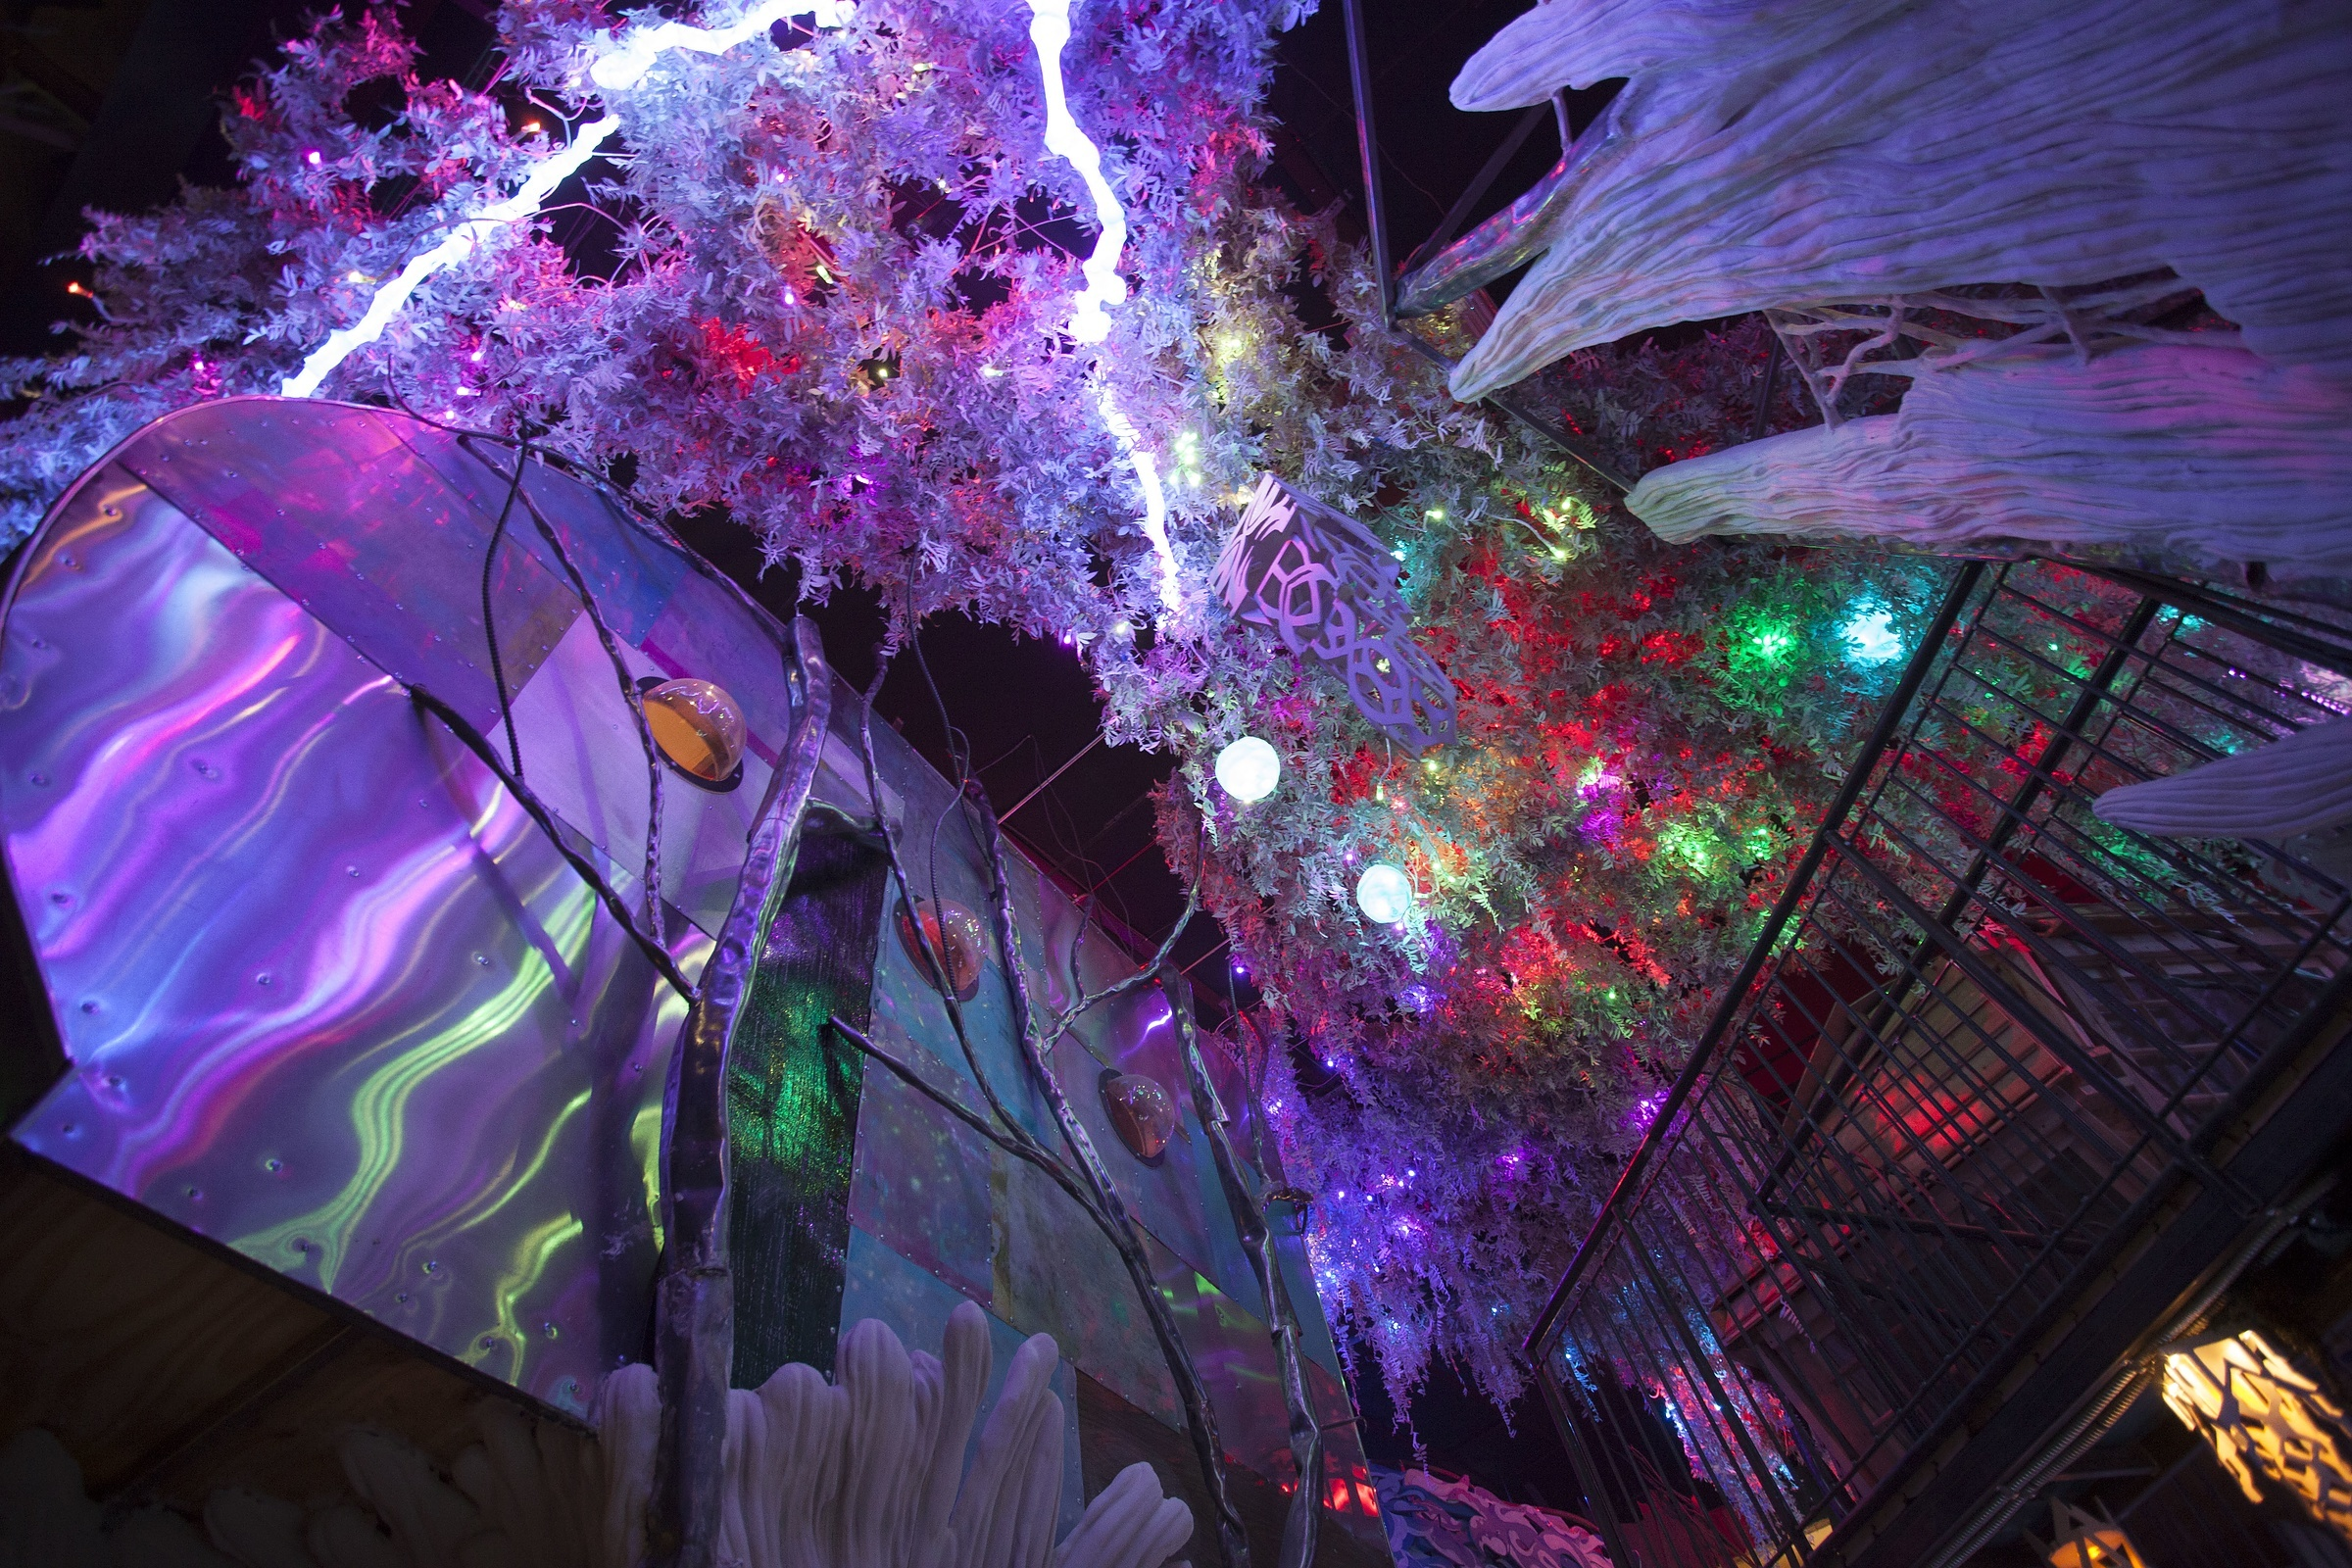 Meow Wolf Builds Fantastical Immersive Art — And Sustainable Models for Artists